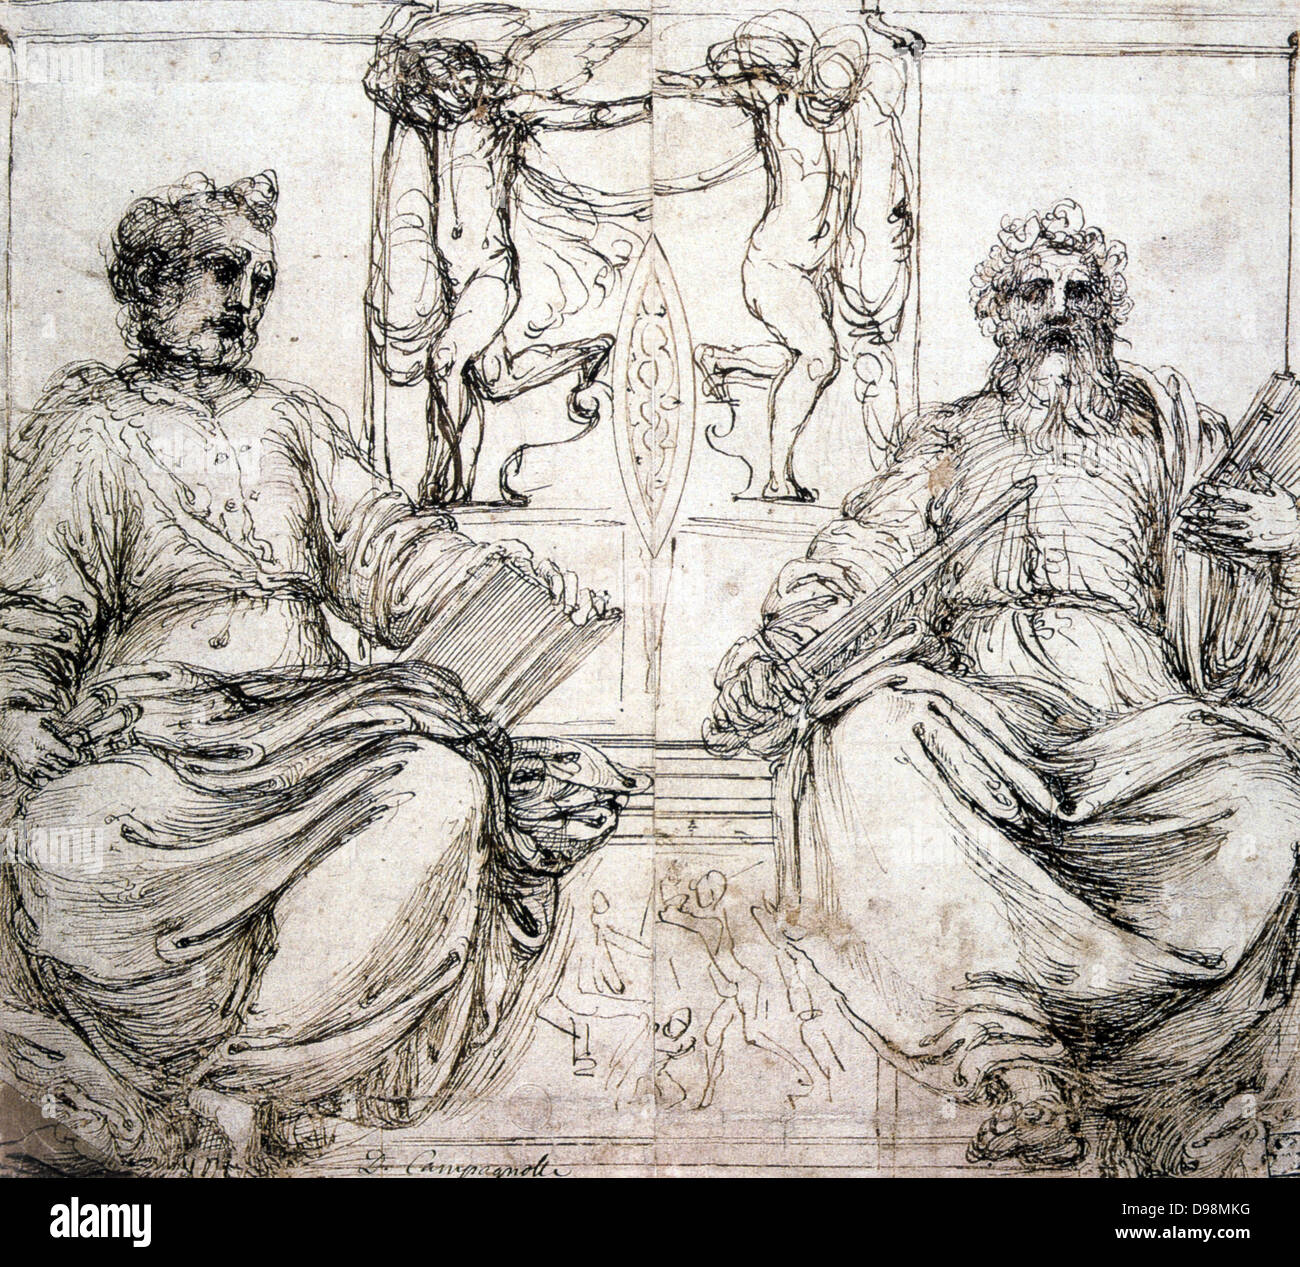 St Peter and St Paul' Sepia ink on paper. Perino del Vaga (1501-1547) Italian painter and decorative artist. - Stock Image